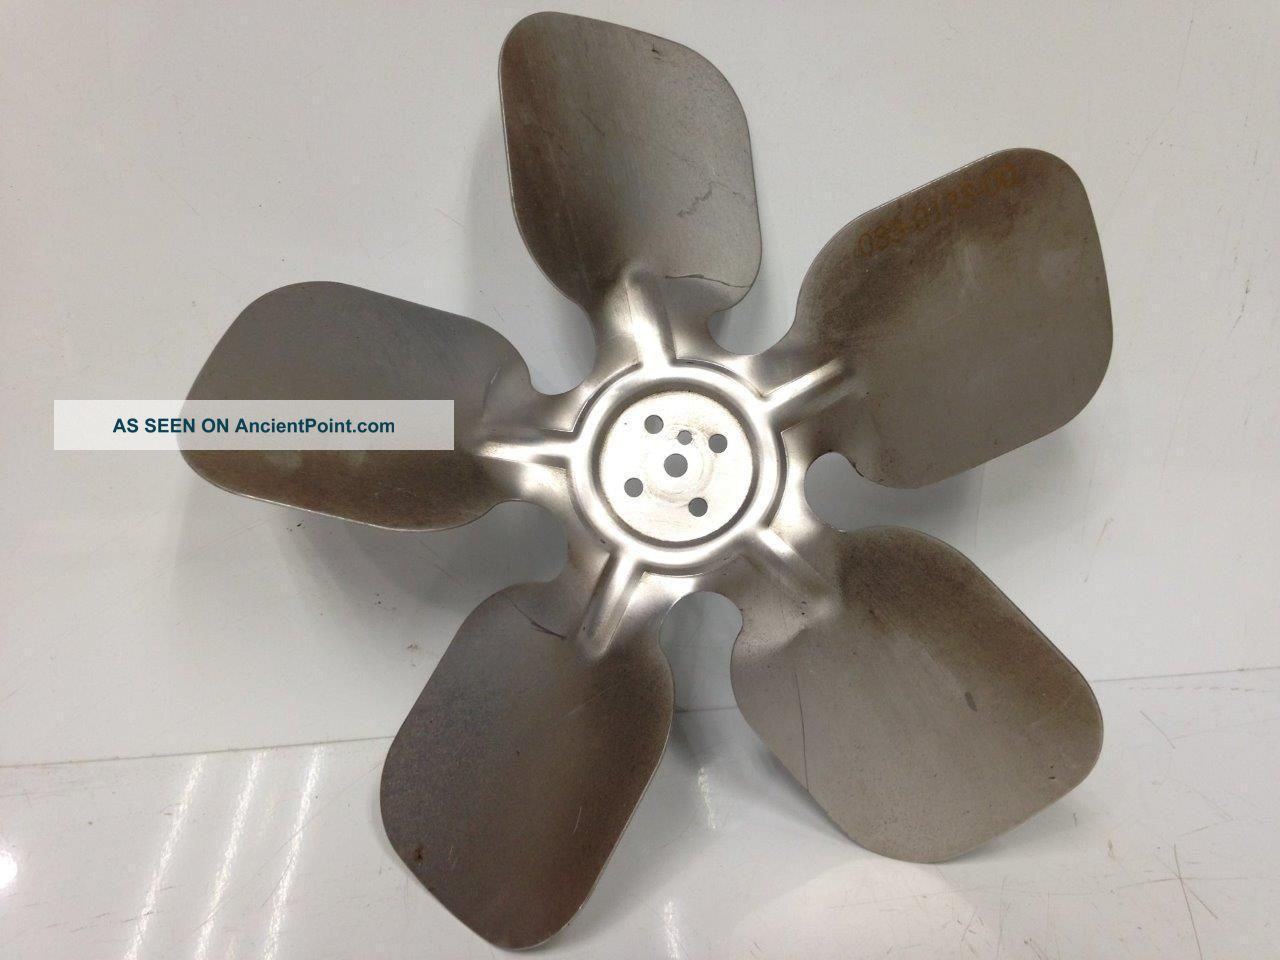 9in Industrial Steampunk Repurpose Vintage Fan Blade Propeller Craft Art Diy Other Mercantile Antiques photo